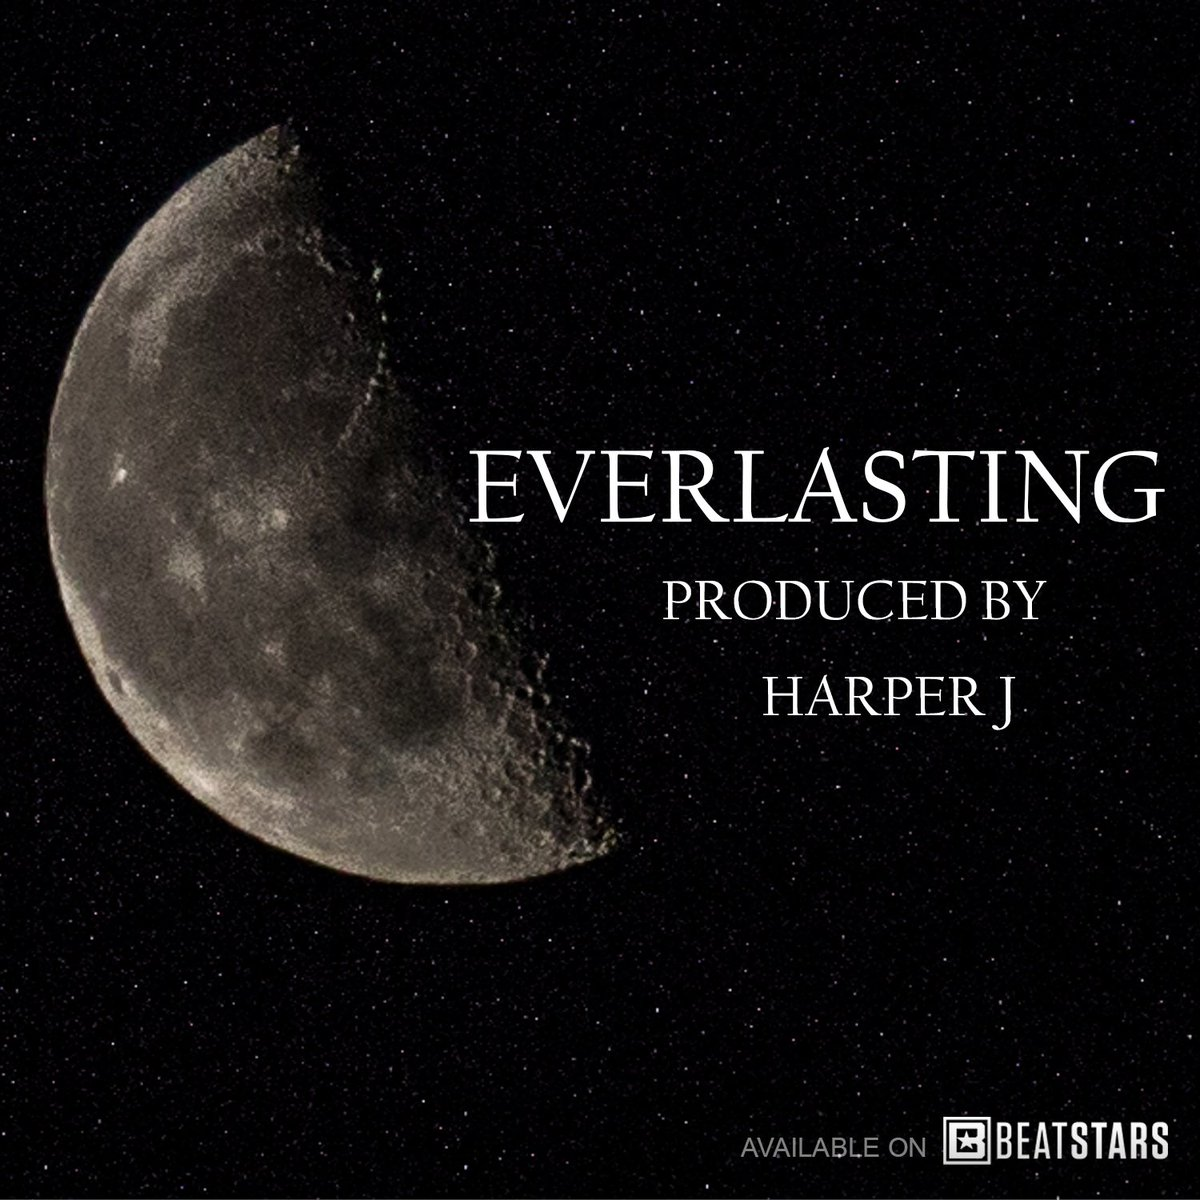 "Sad Type Beat ""Everlasting"" Key Dmin BPM 90 [Prod. by Harper J]  Purchase this beat: https://www.beatstars.com/beat/rebel-4707066 …  Contact: harperjhiphop@gmail.com  http://www.youtube.com/channel/UCZCyYjCWbgt9g3xHB59vm-w …  Instagram: https://www.instagram.com/harper_jt  FaceBook: https://www.facebook.com/john.harper.148116 …  #beatsforsale #beatstars #hiphoppic.twitter.com/ny0lJtTCkJ"